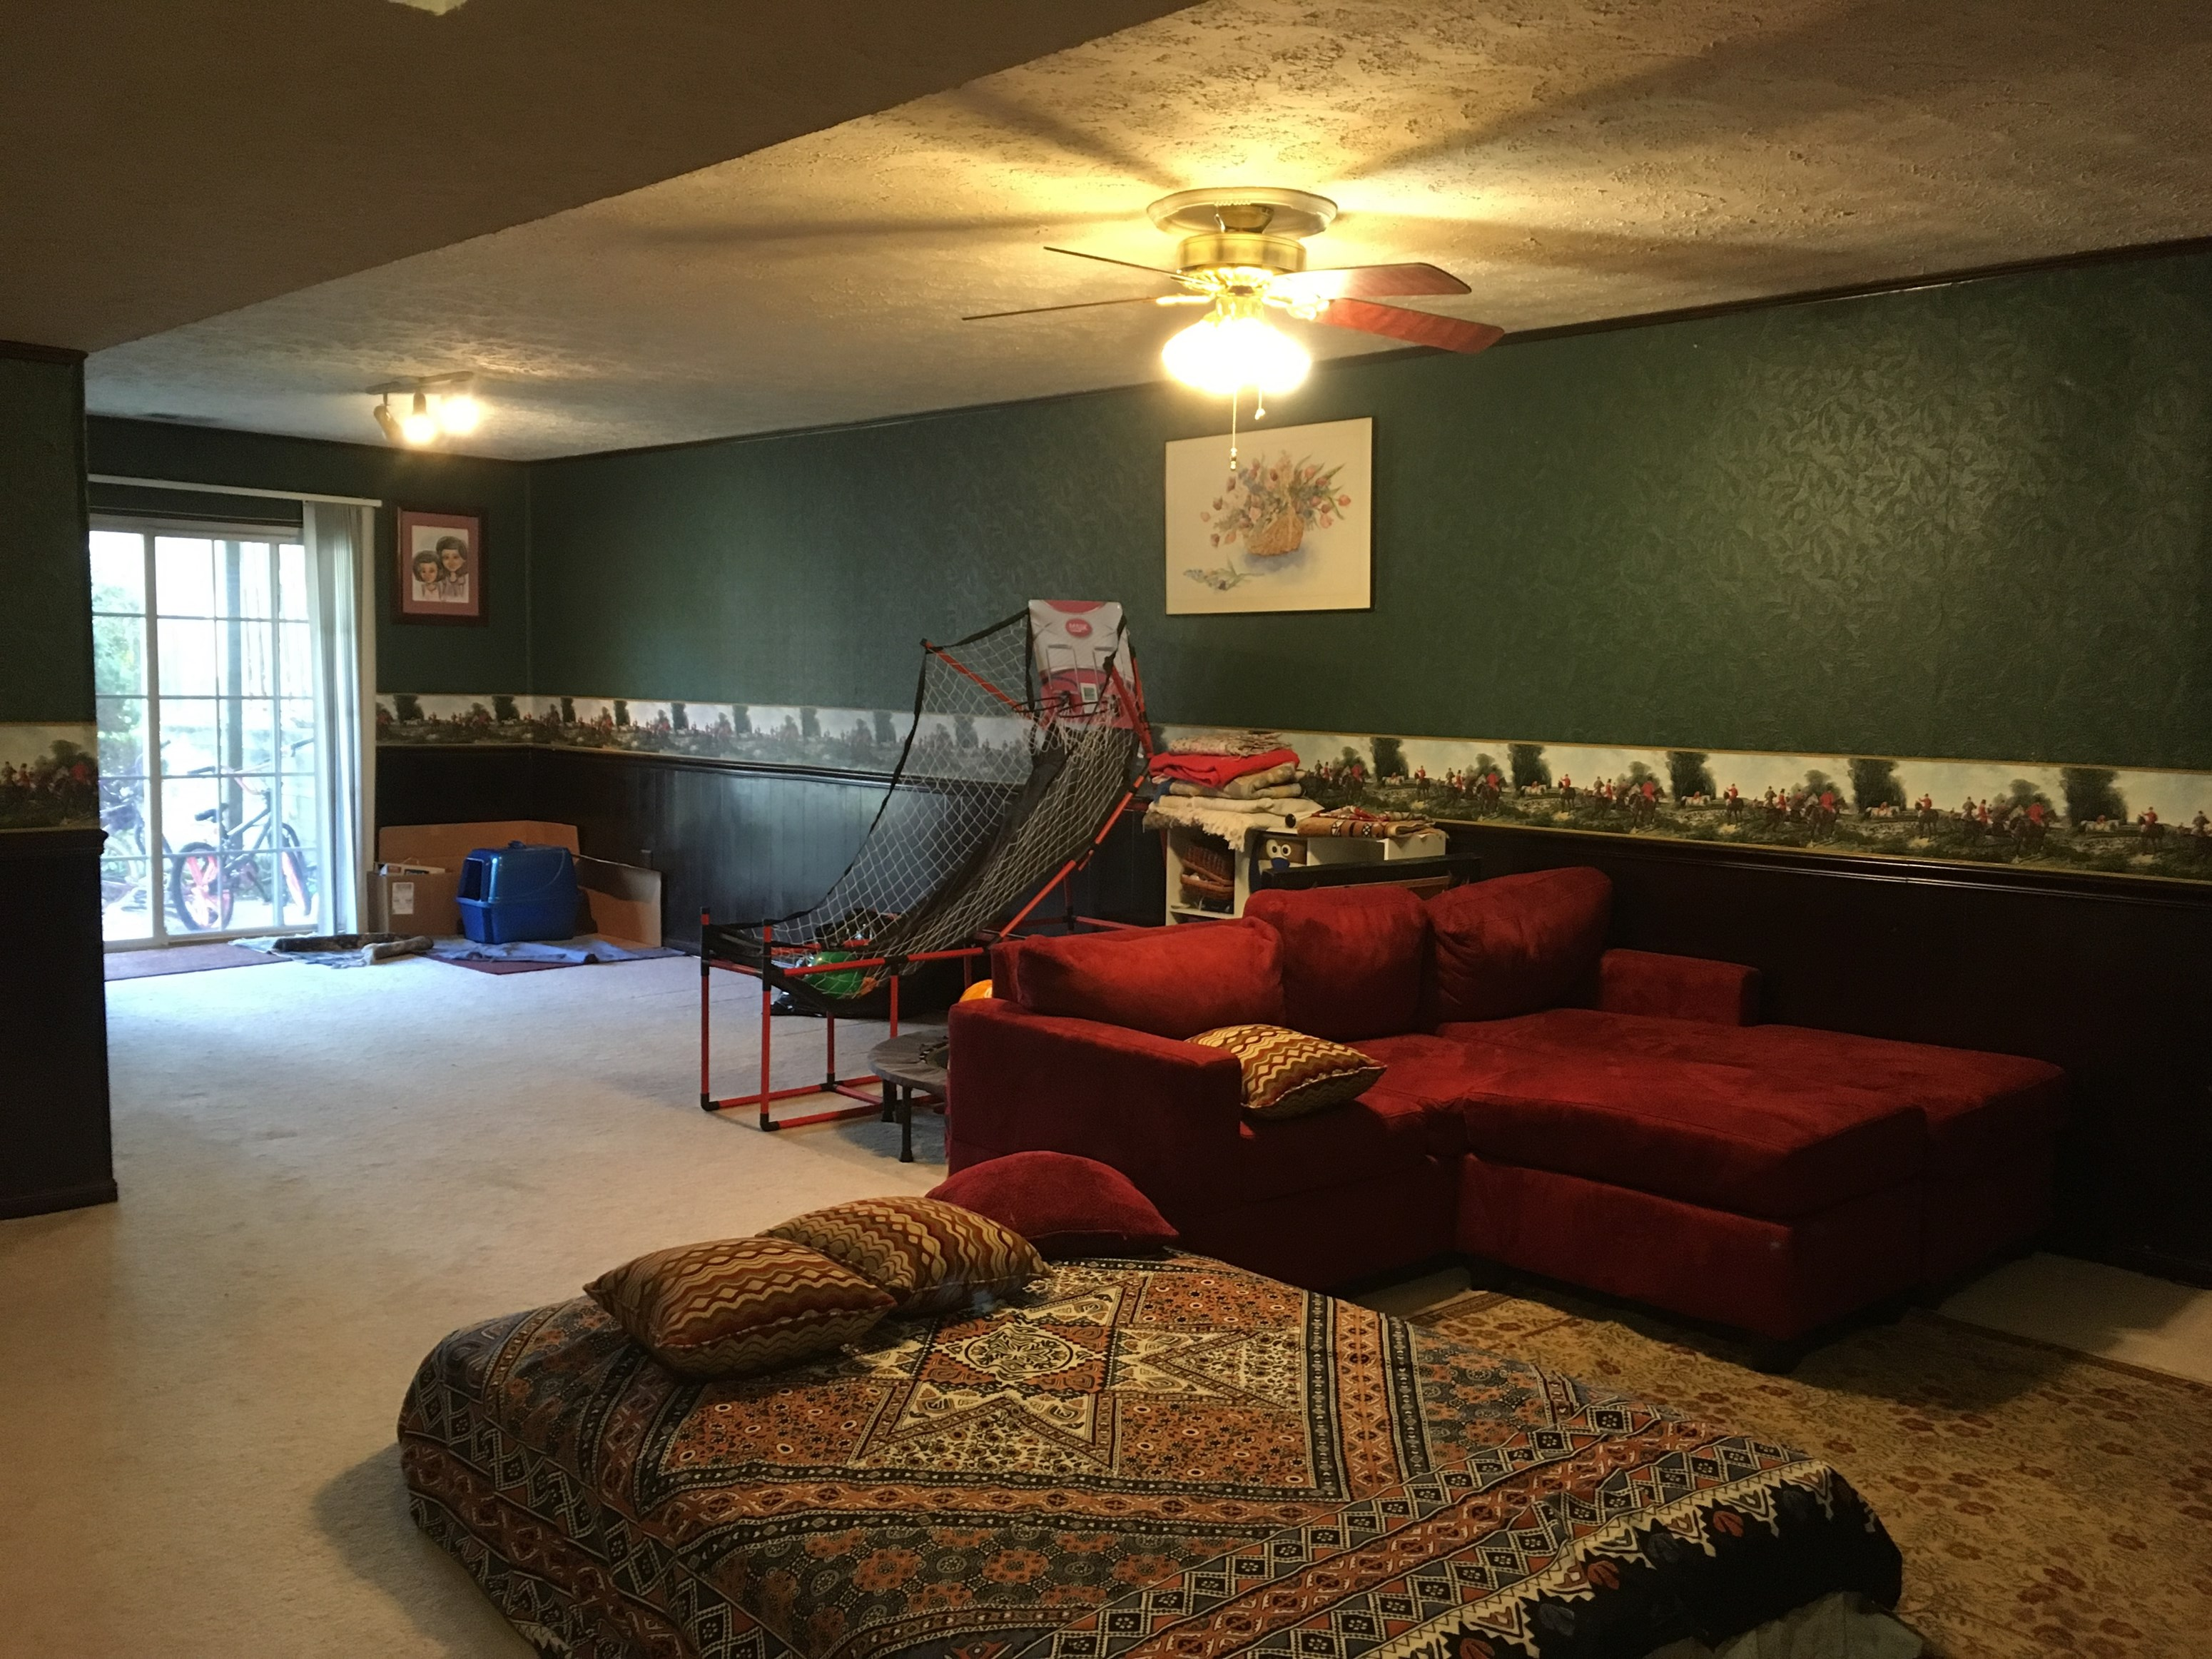 Rooms for Rent in Baltimore – Apartments, Flats, Commercial Space ...